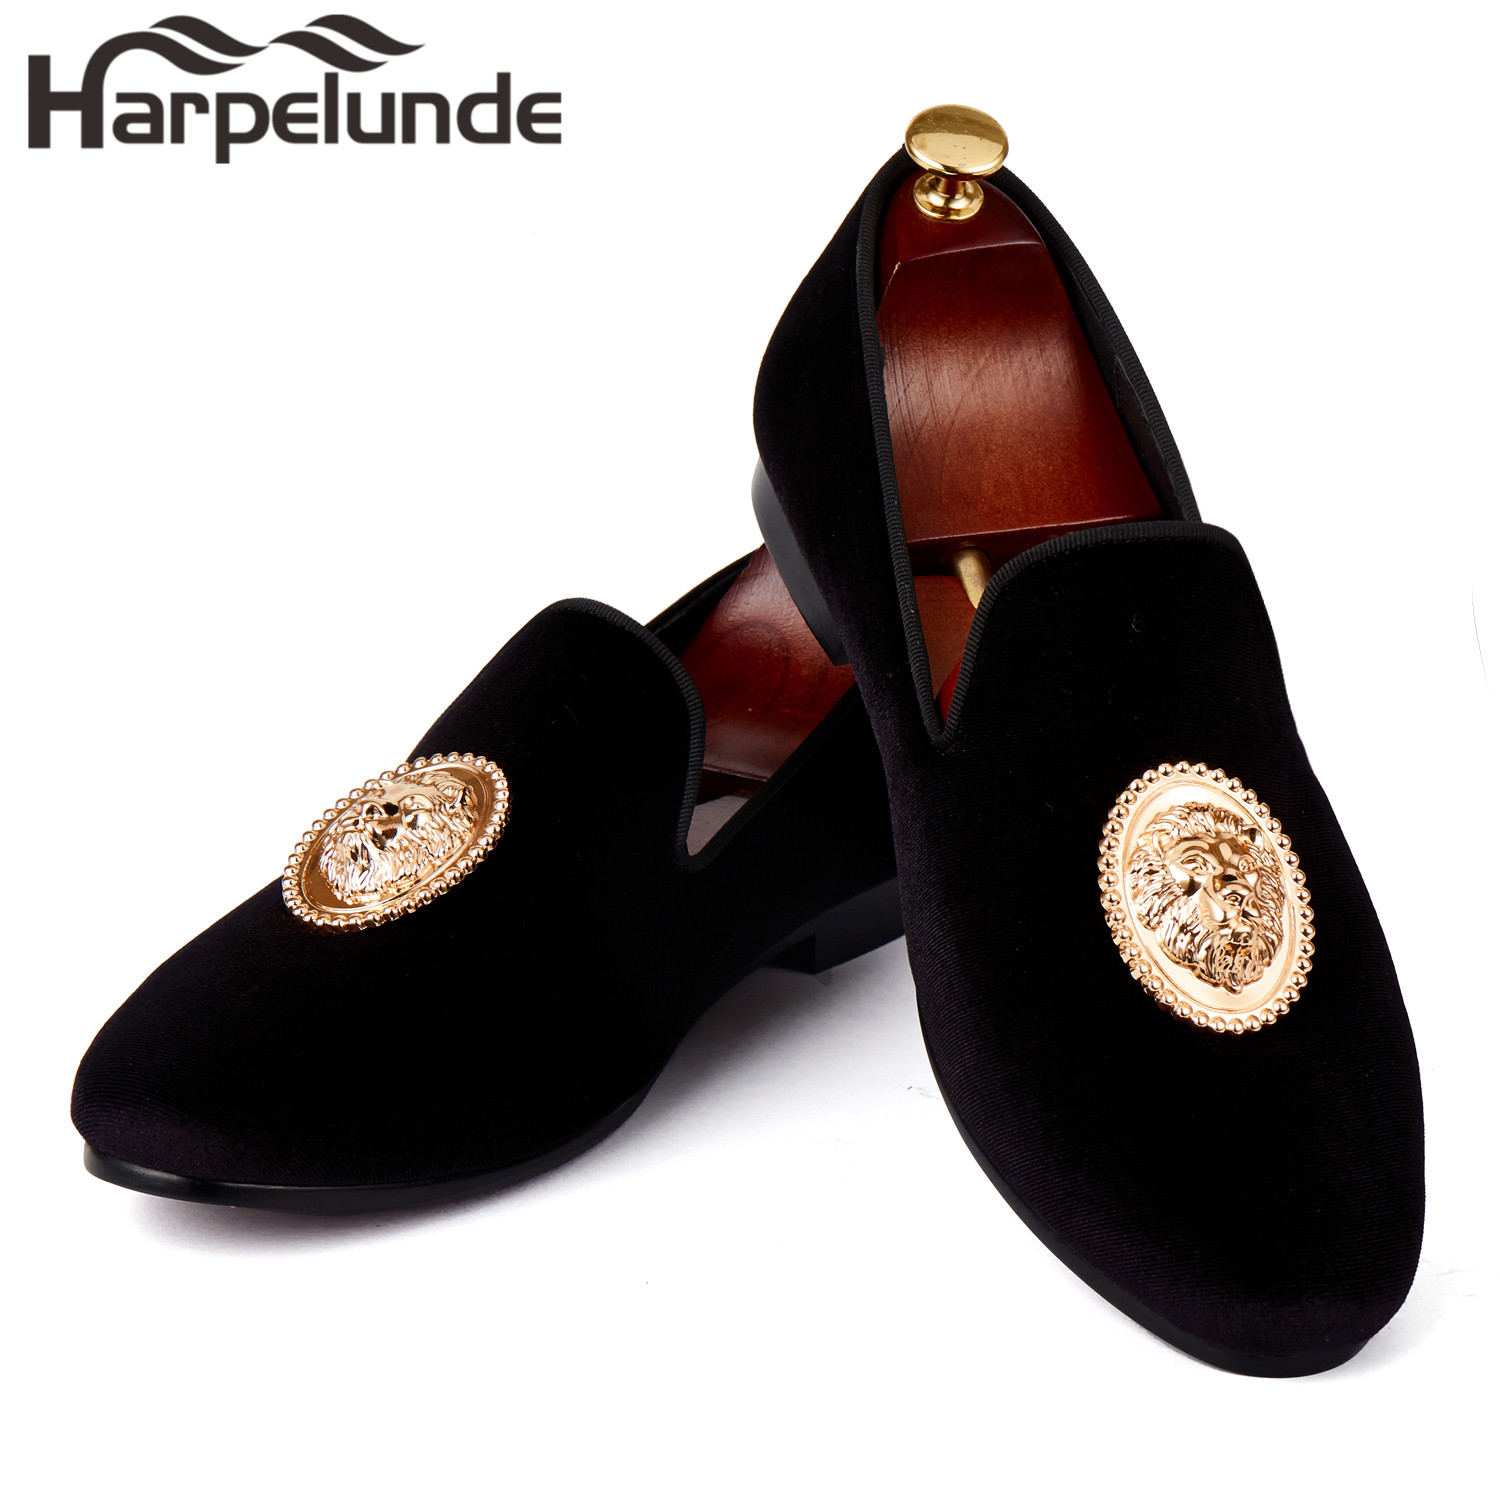 Harpelunde Men Event Skor Lion Buckle Dress Skor Svart Velvet Loafer Tofflor Storlek 6-14